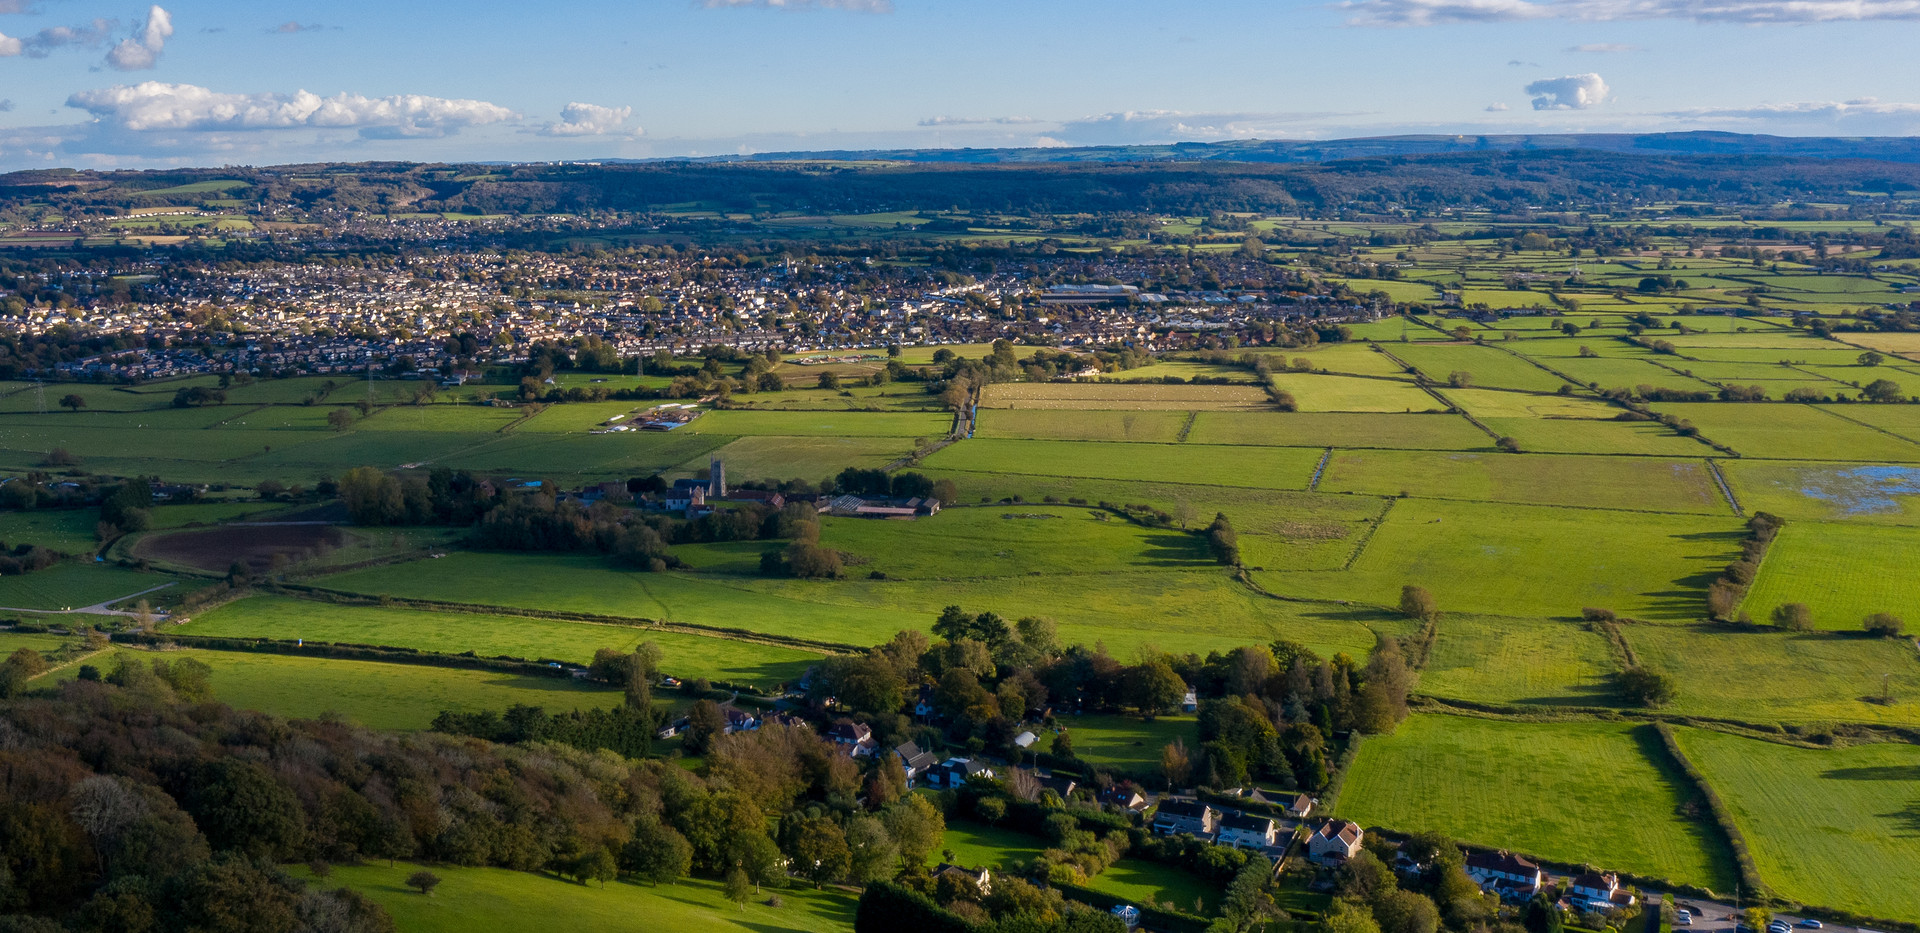 Nailsea from above 2021